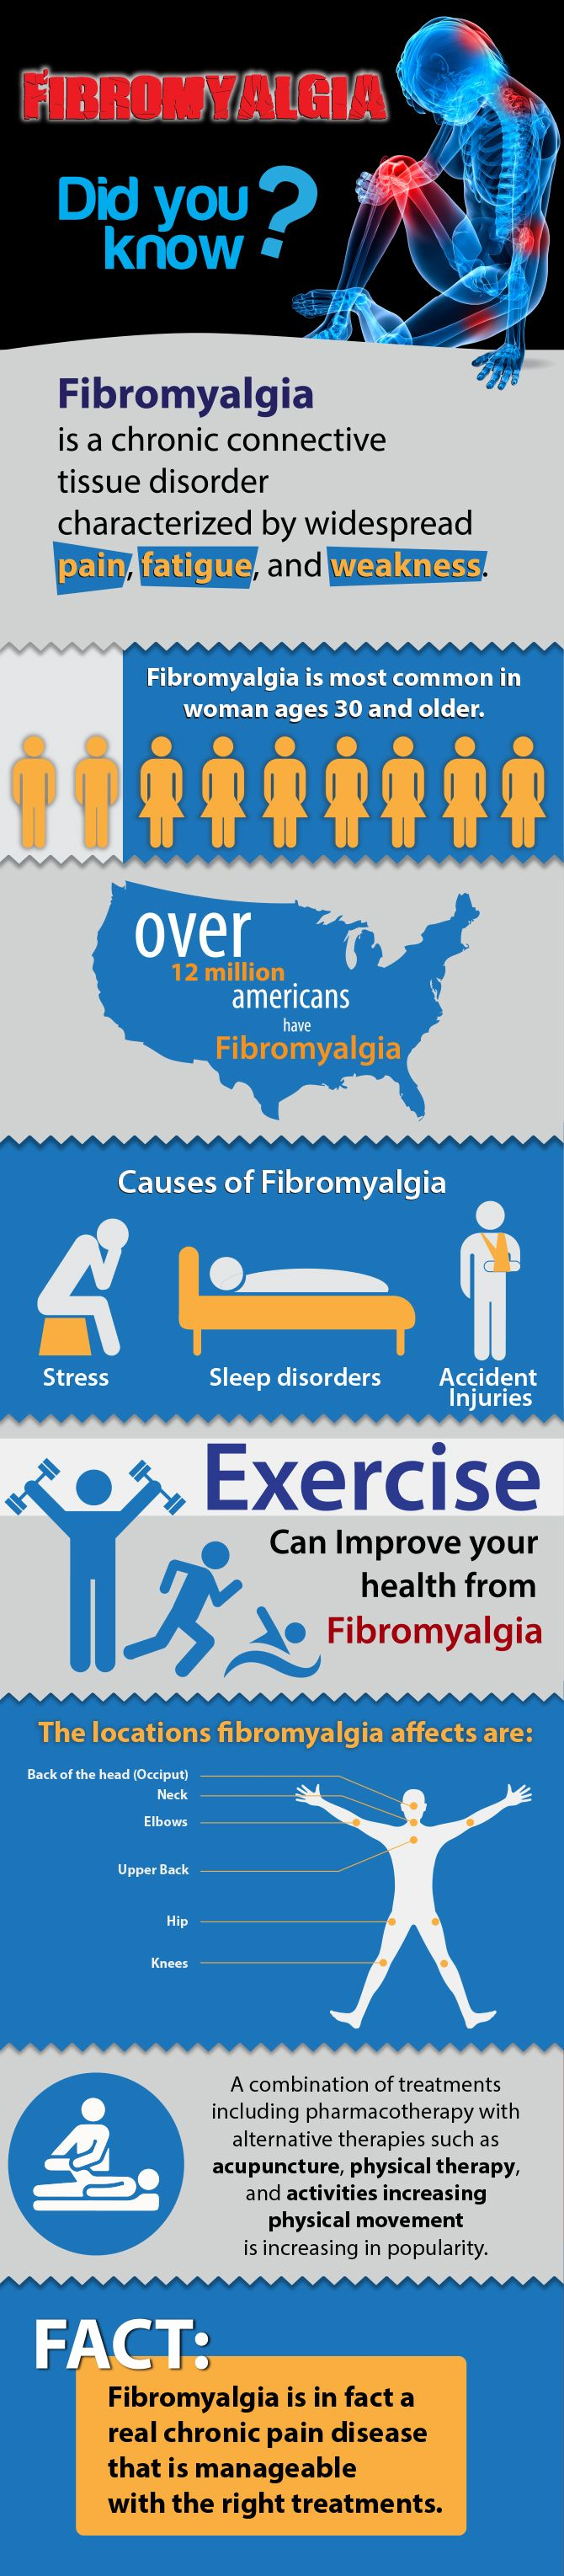 best images about fibromyalgia hell sensory 17 best images about fibromyalgia hell sensory overload spoon theory and fibromyalgia